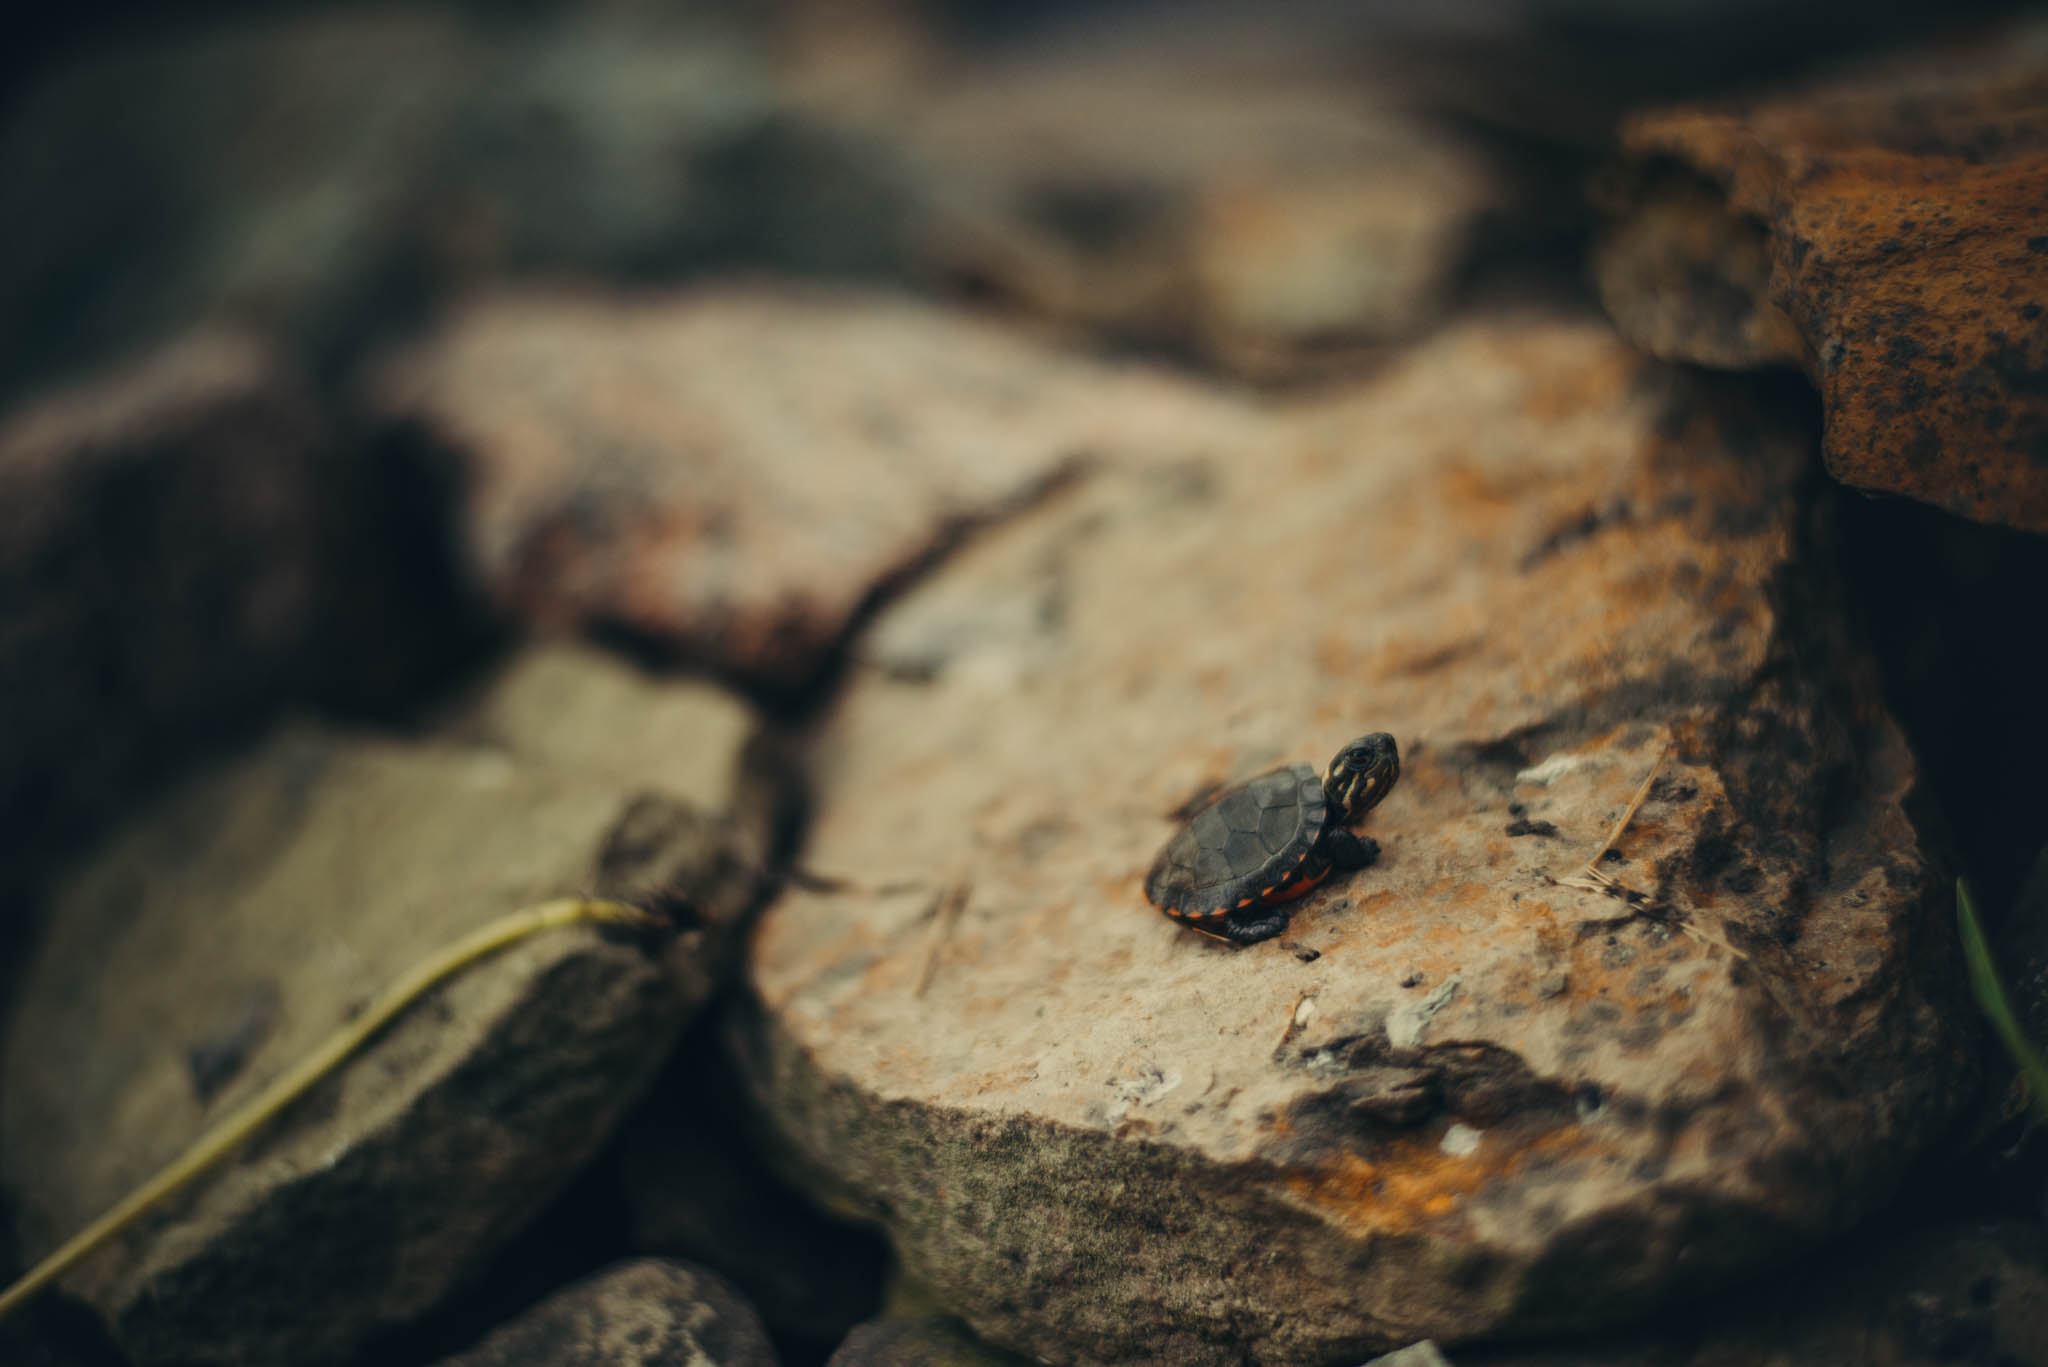 Eastern painted turtle hatchling basking on some rocks near water.